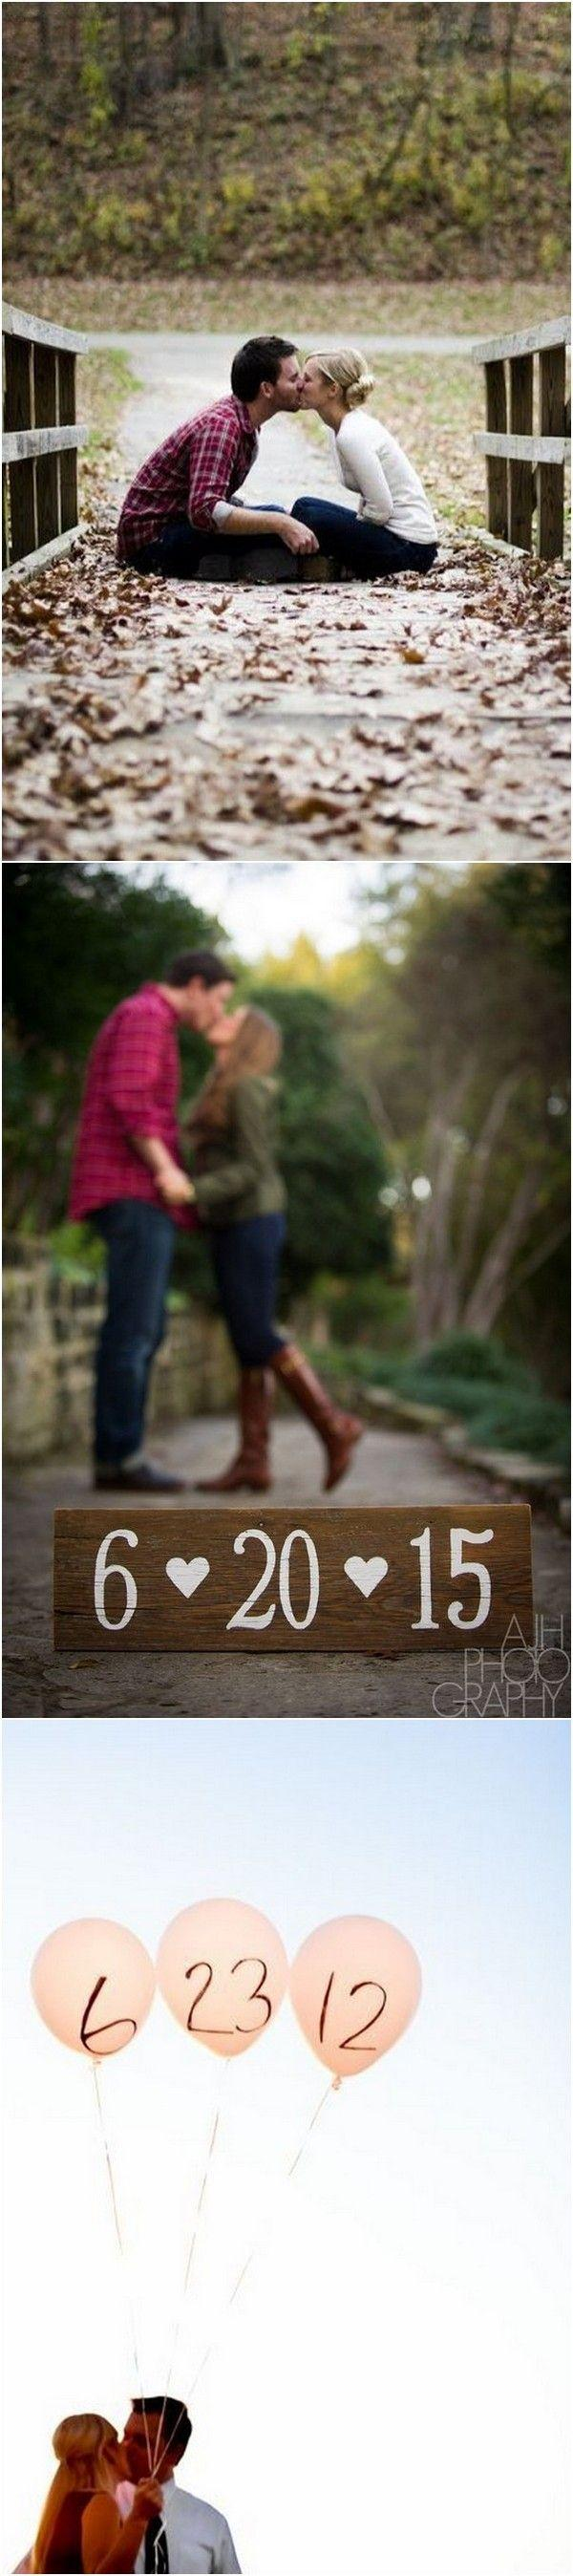 Wedding - Top 20 Engagement Photo Ideas To Love